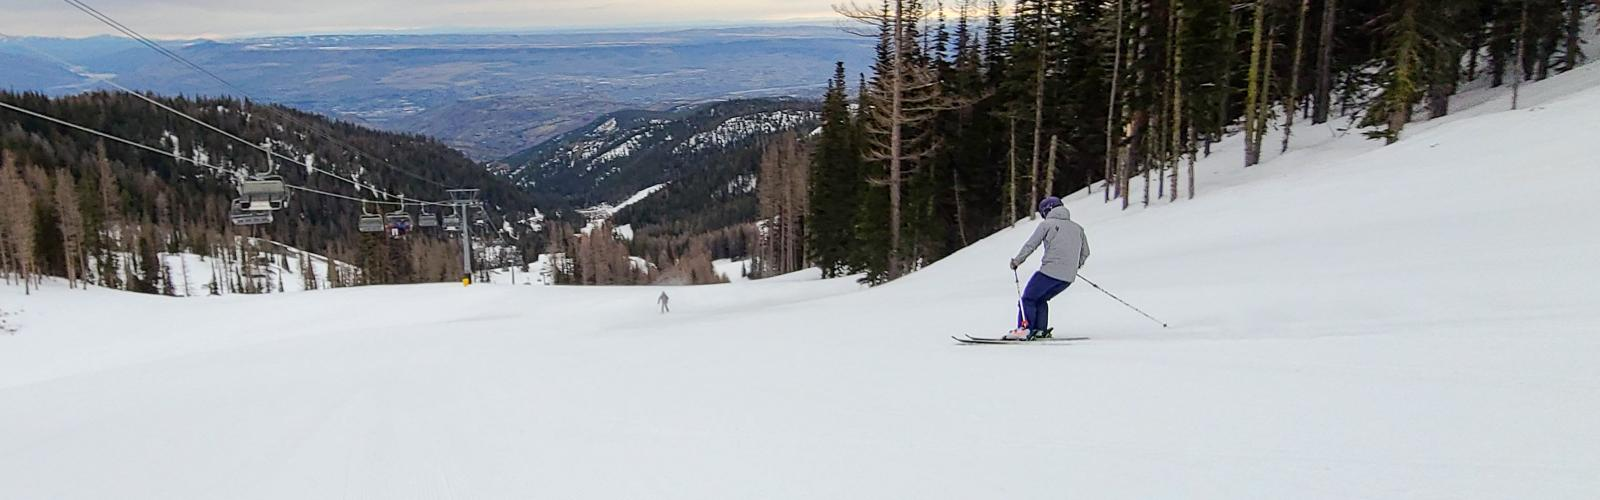 skier making a turn on Tumwater with Wenatchee Express and Valley in the background